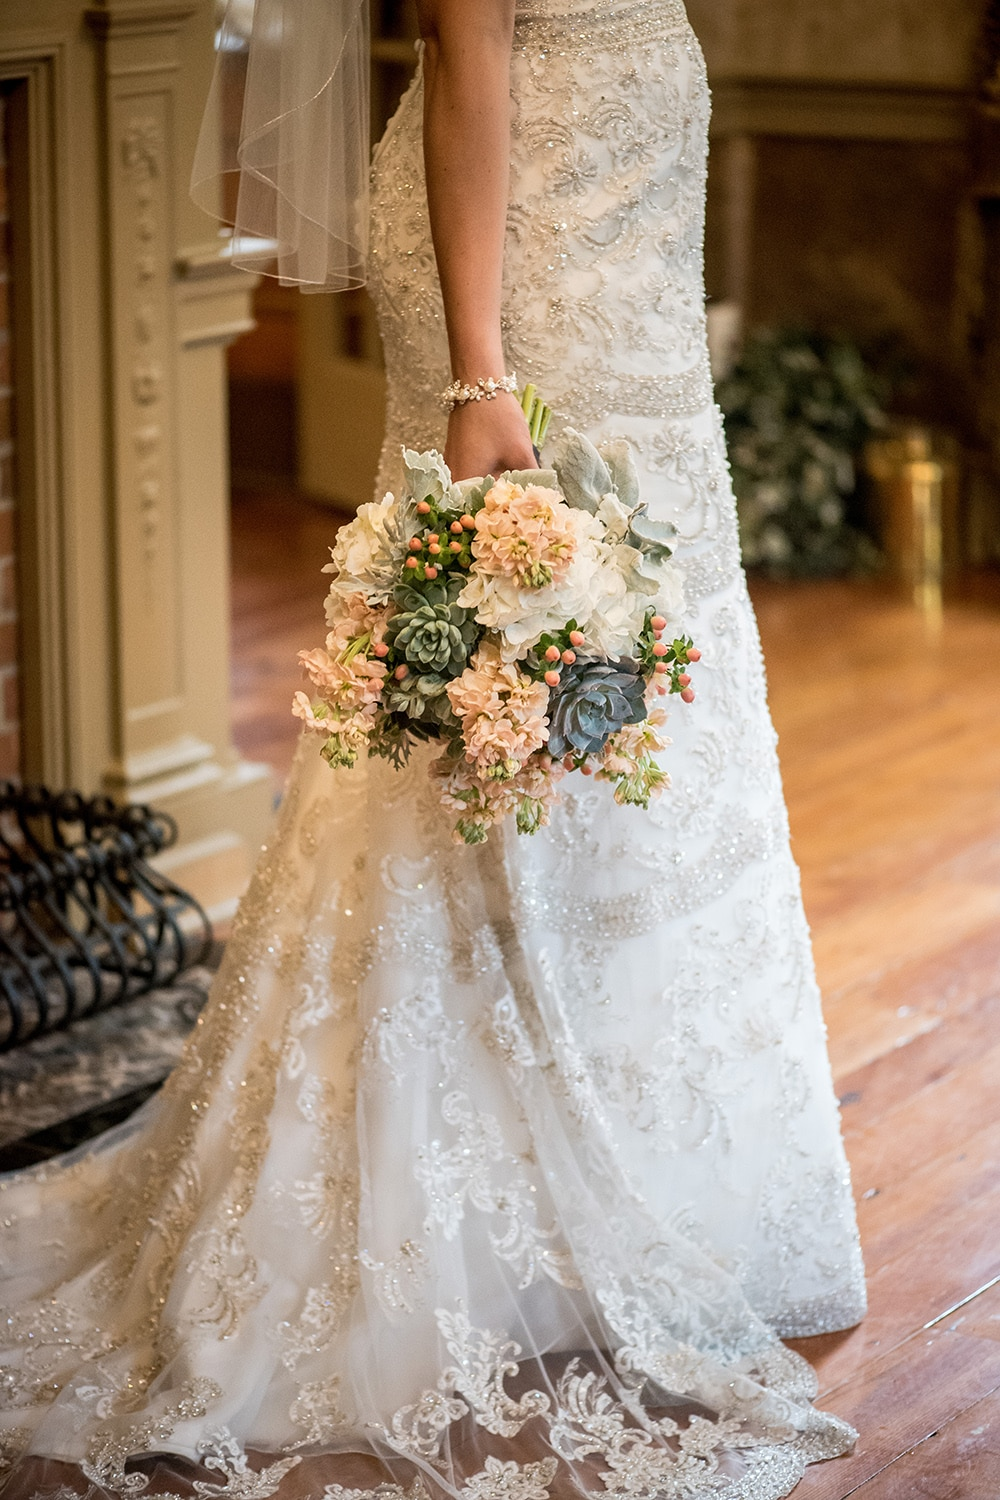 Victorian wedding at moonstone manor in charming elizabethtown pa elizabethtown victorian wedding beaded gown 1 junglespirit Images